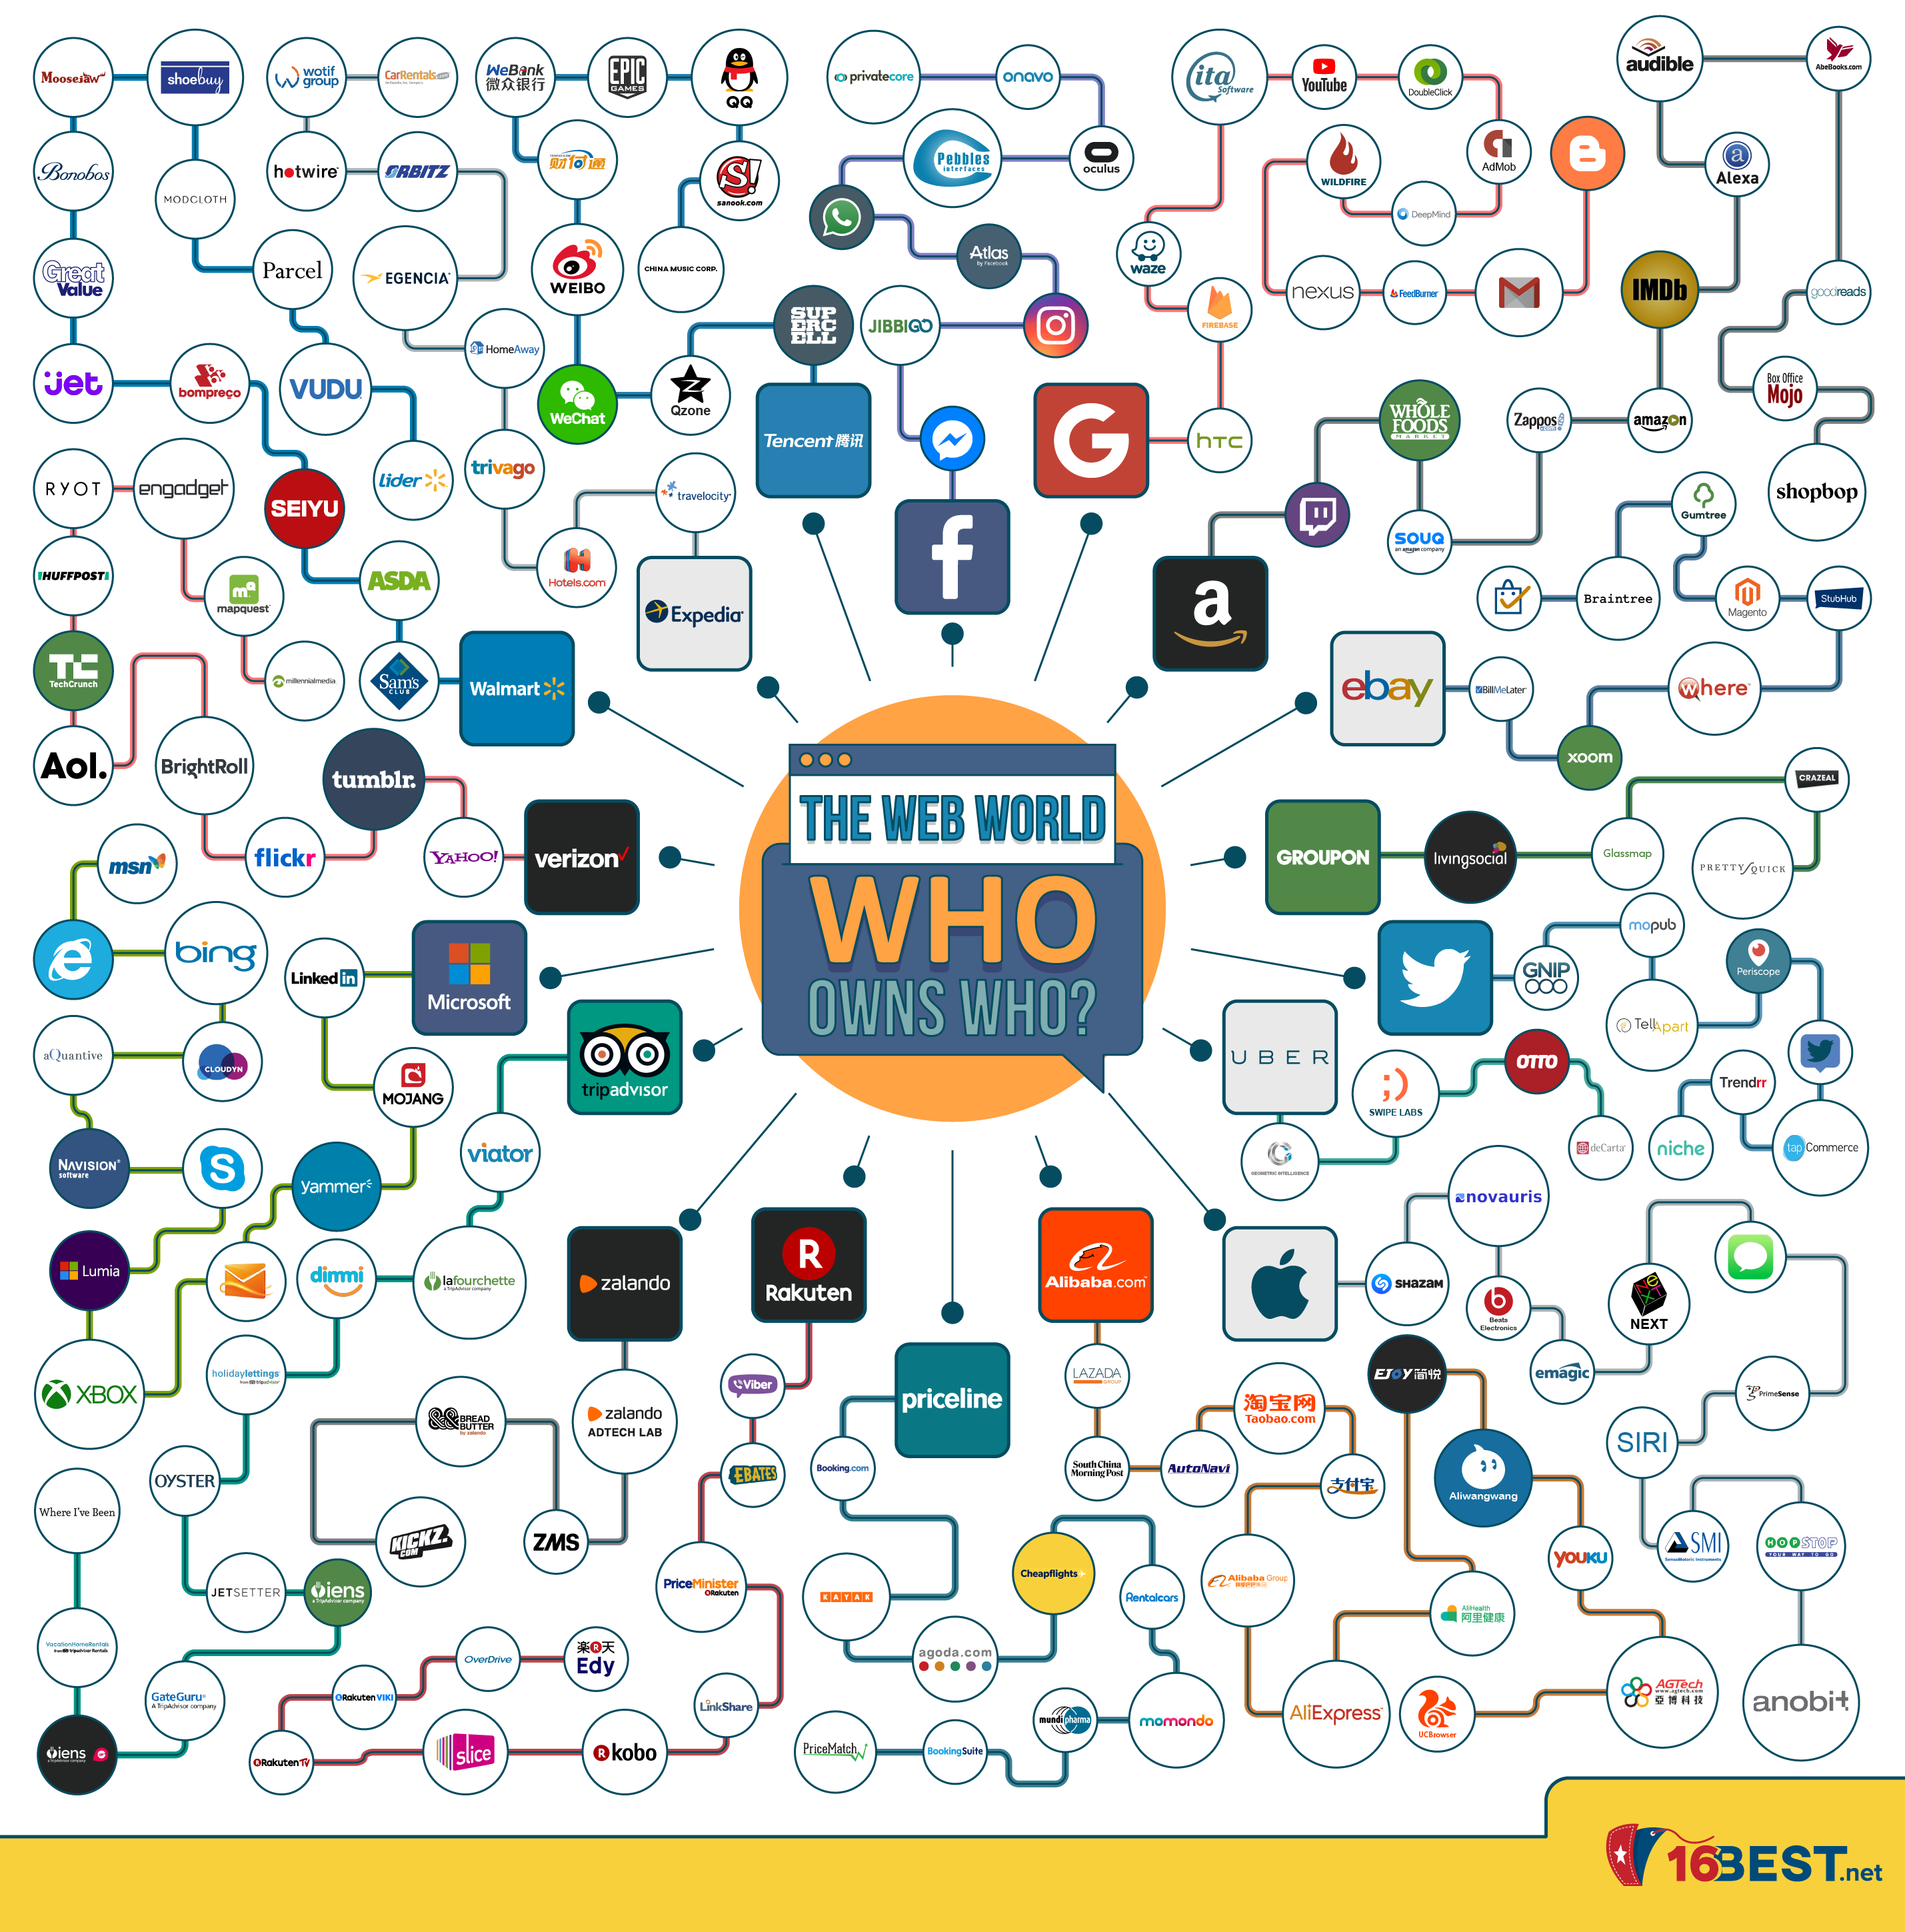 Who Owns Who? Intriguing Ownership Patterns in the Web World - Infographic